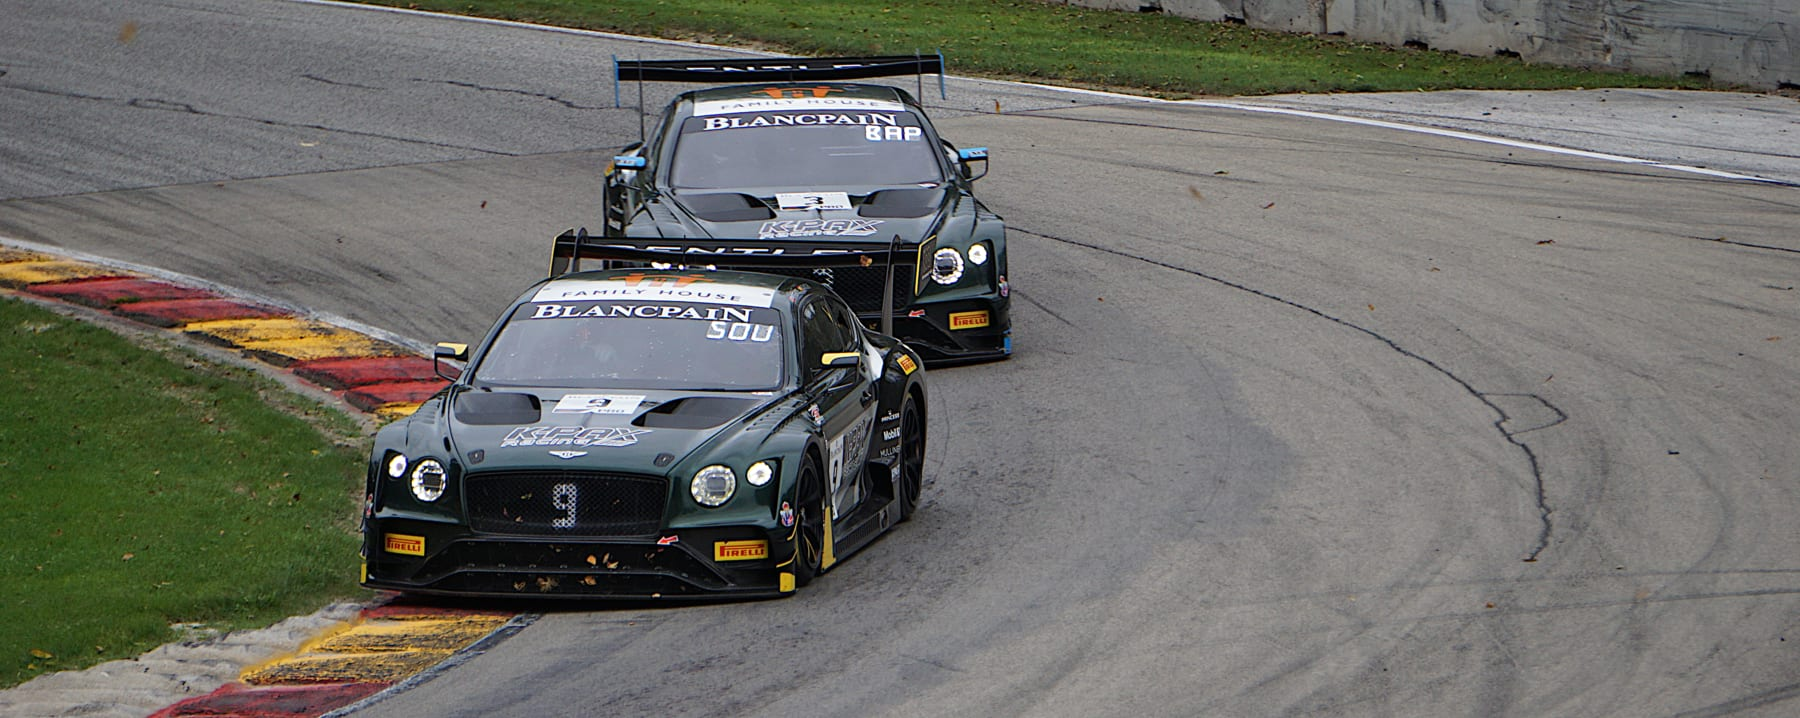 The dueling pair of Bentley Continental GT3s hammering into Canada Corner at Road America